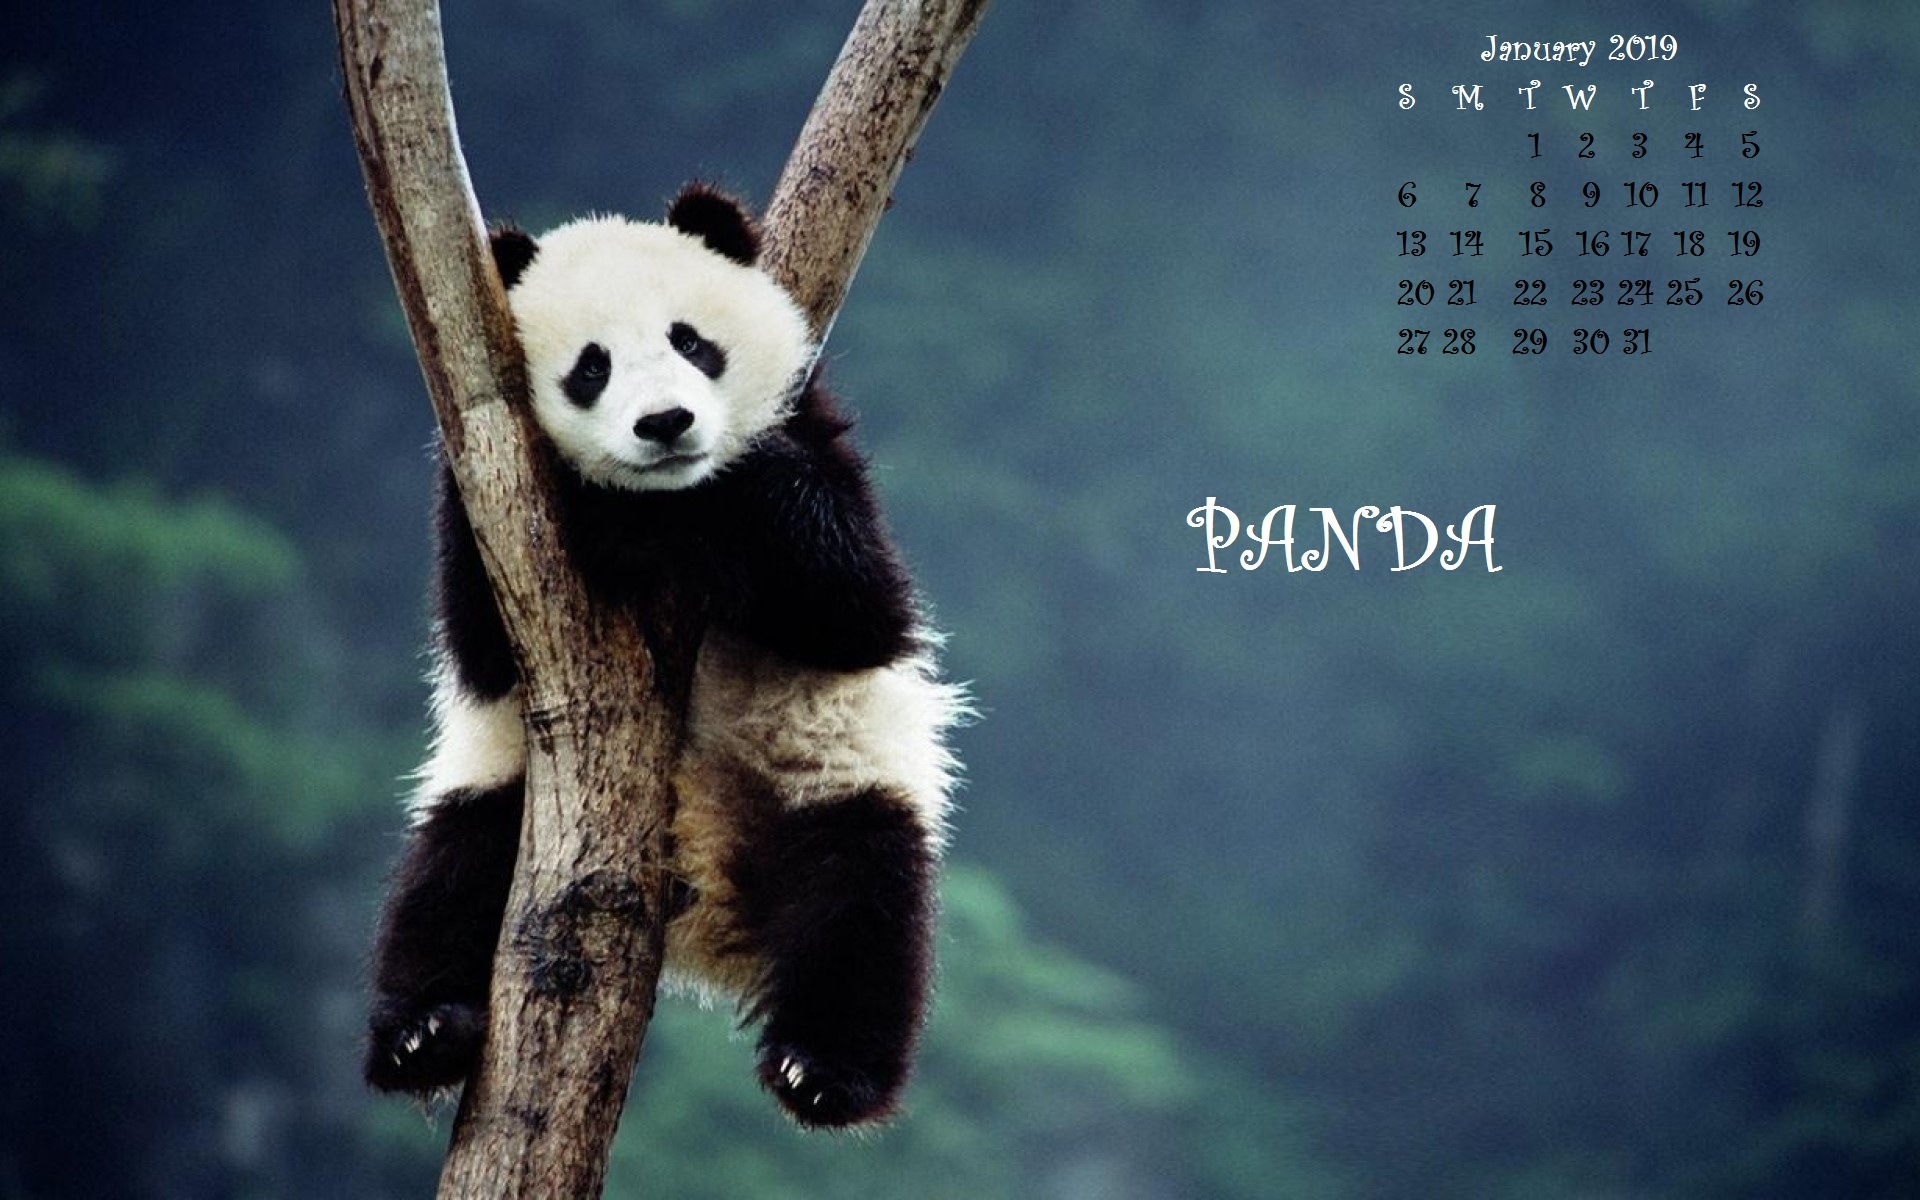 January 2019 Desktop Wallpaper Panda Calendar